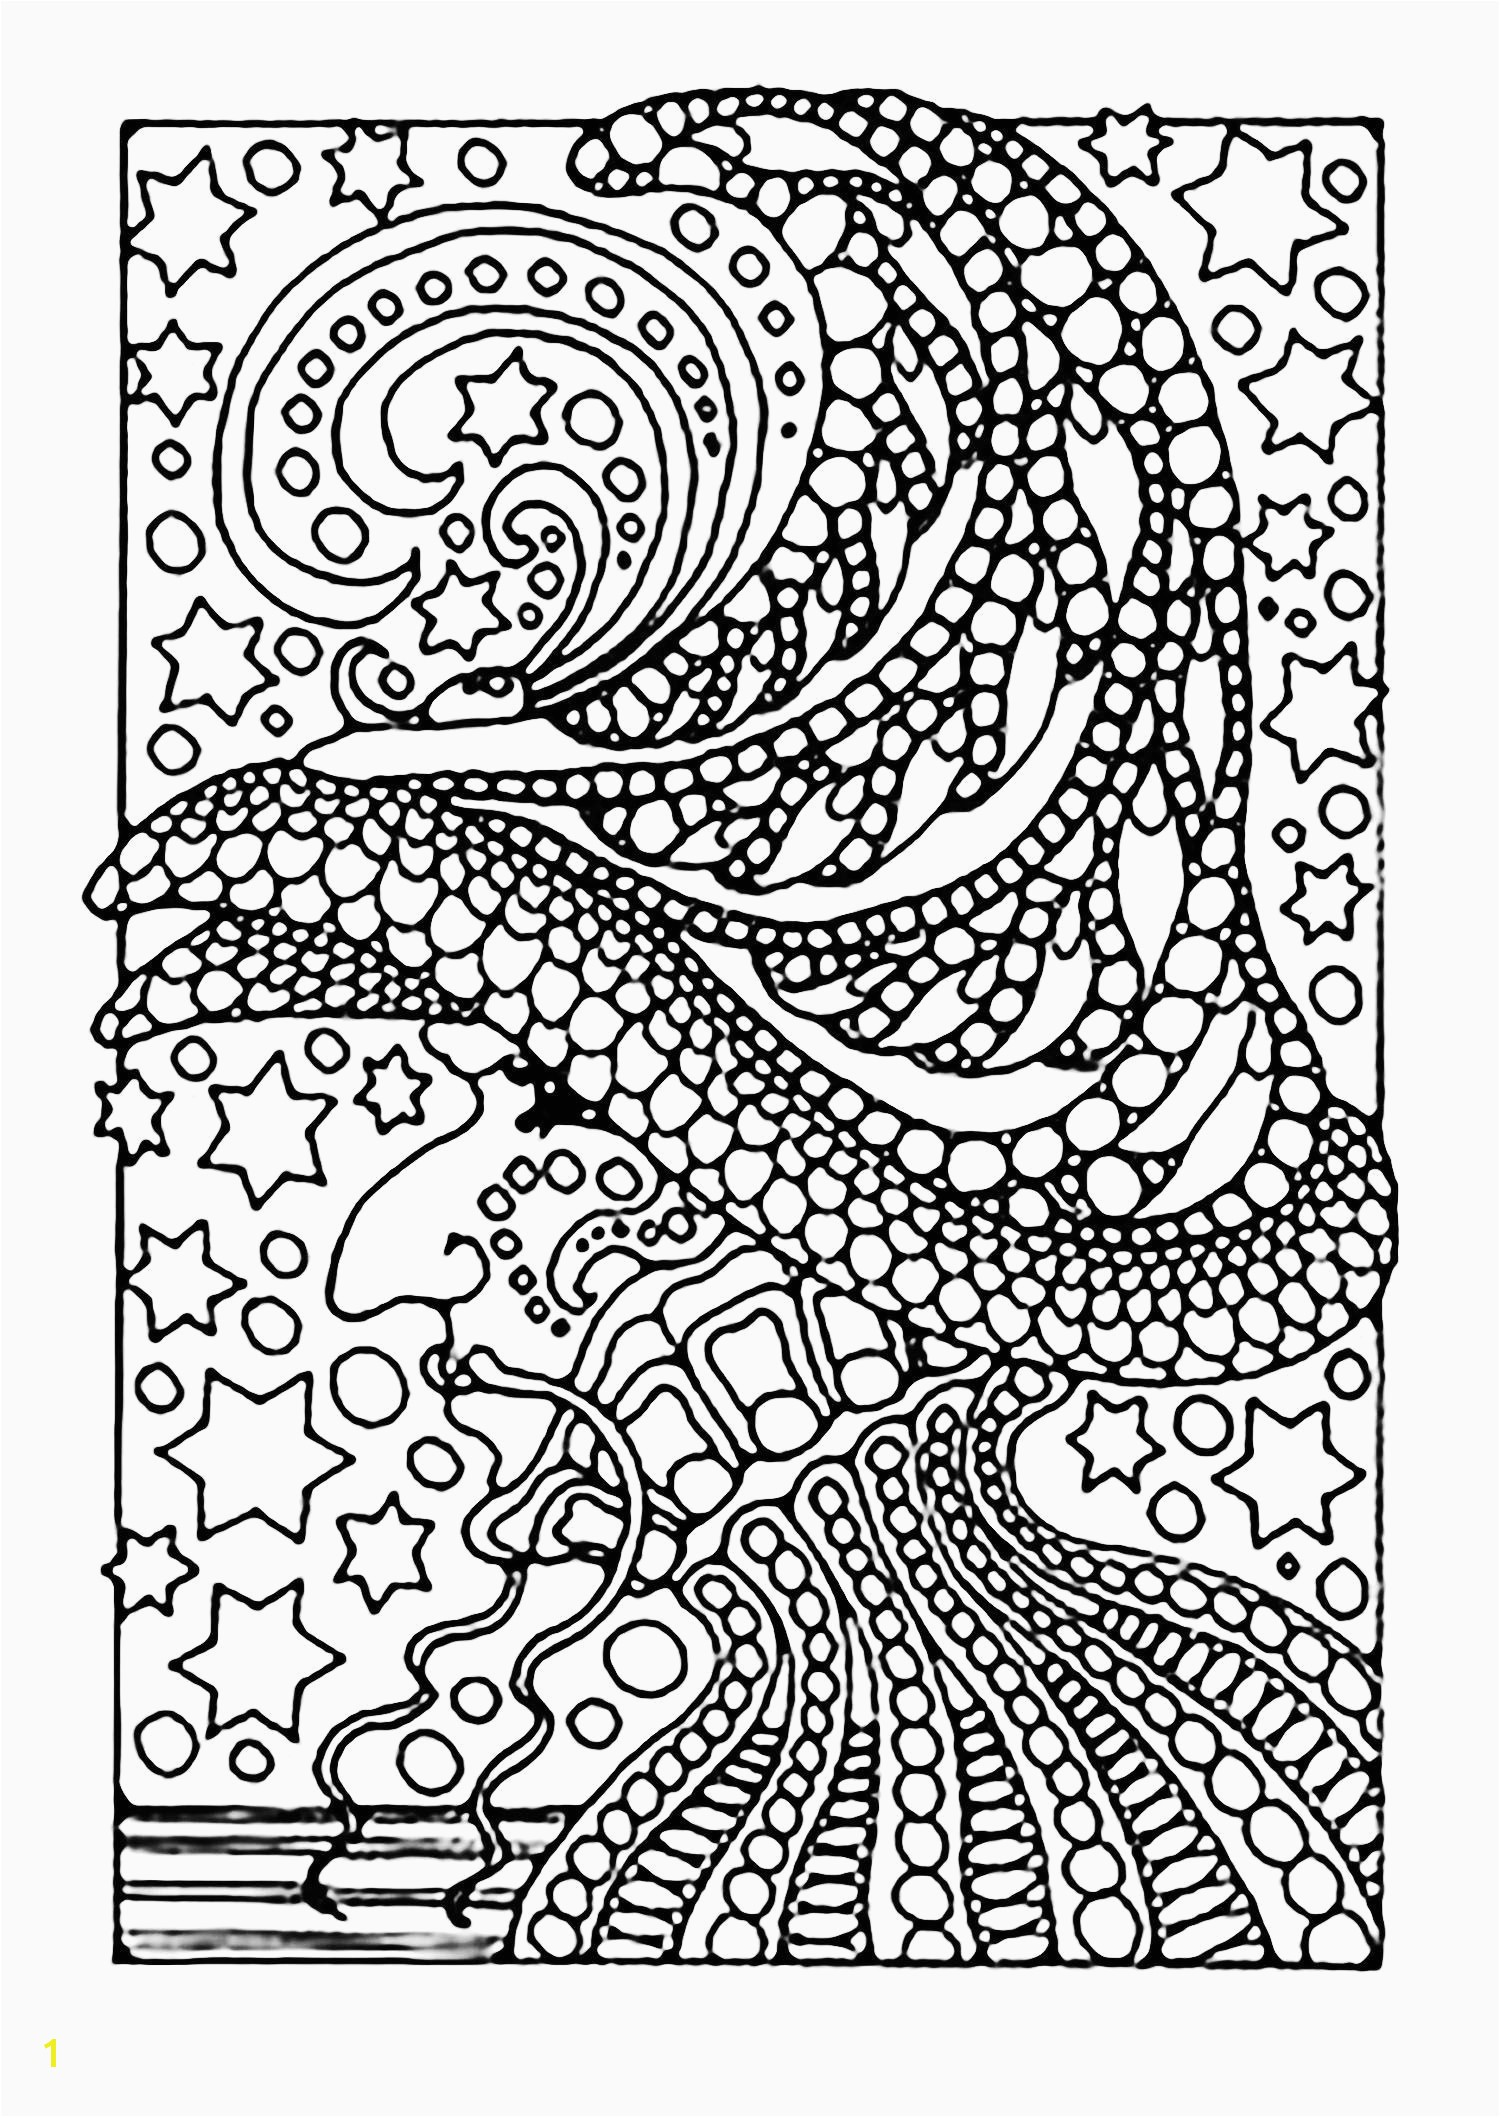 Dltk Coloring Pages Free Printable Coloring Pages Cool Coloring Pages